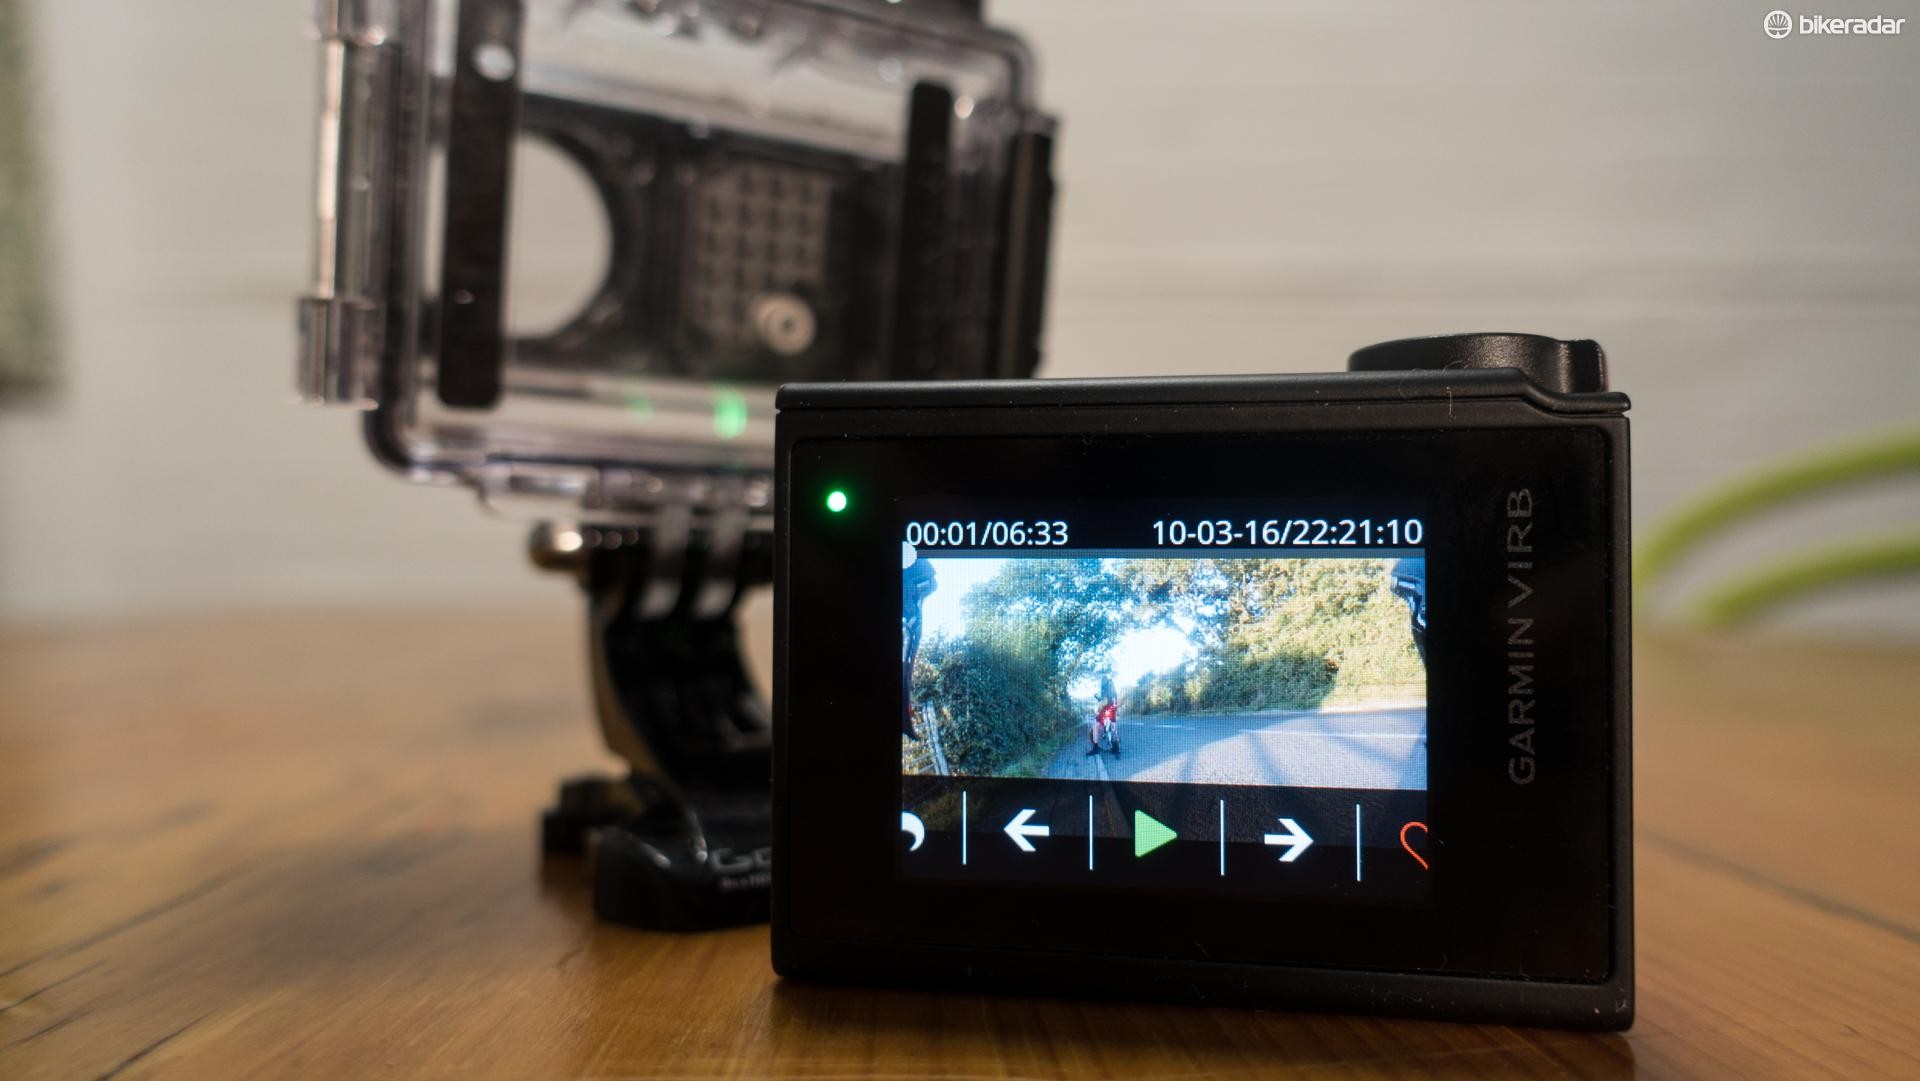 The 1.75-inch touchscreen is great for playing back video